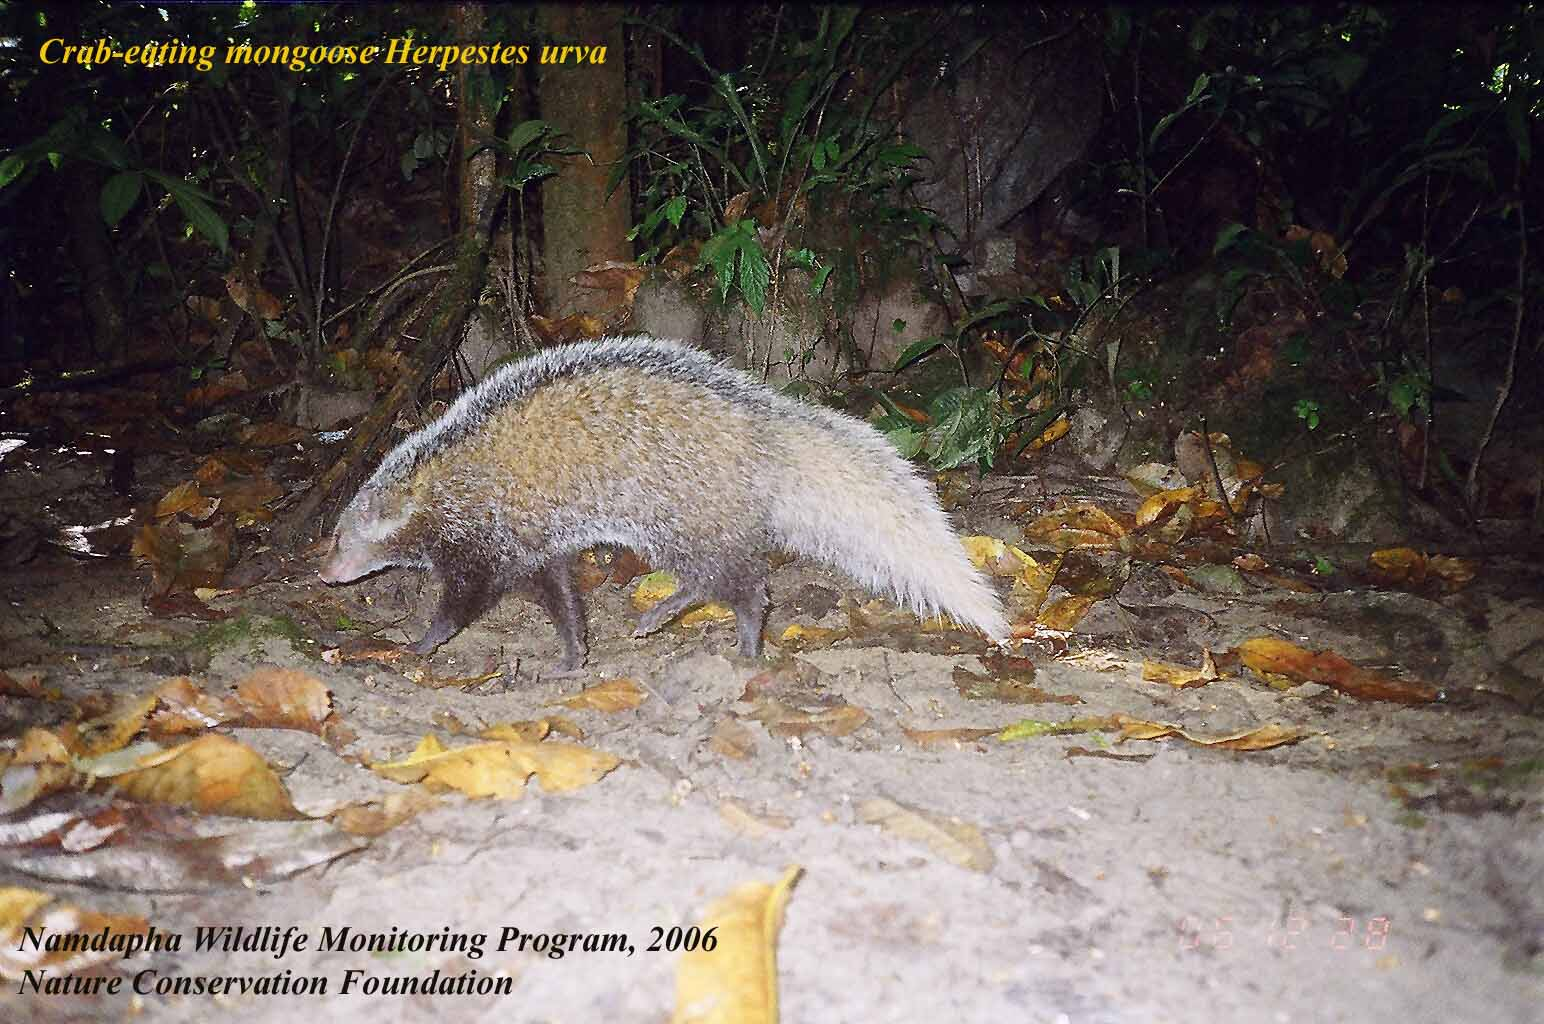 crab-eating mongoose NCF